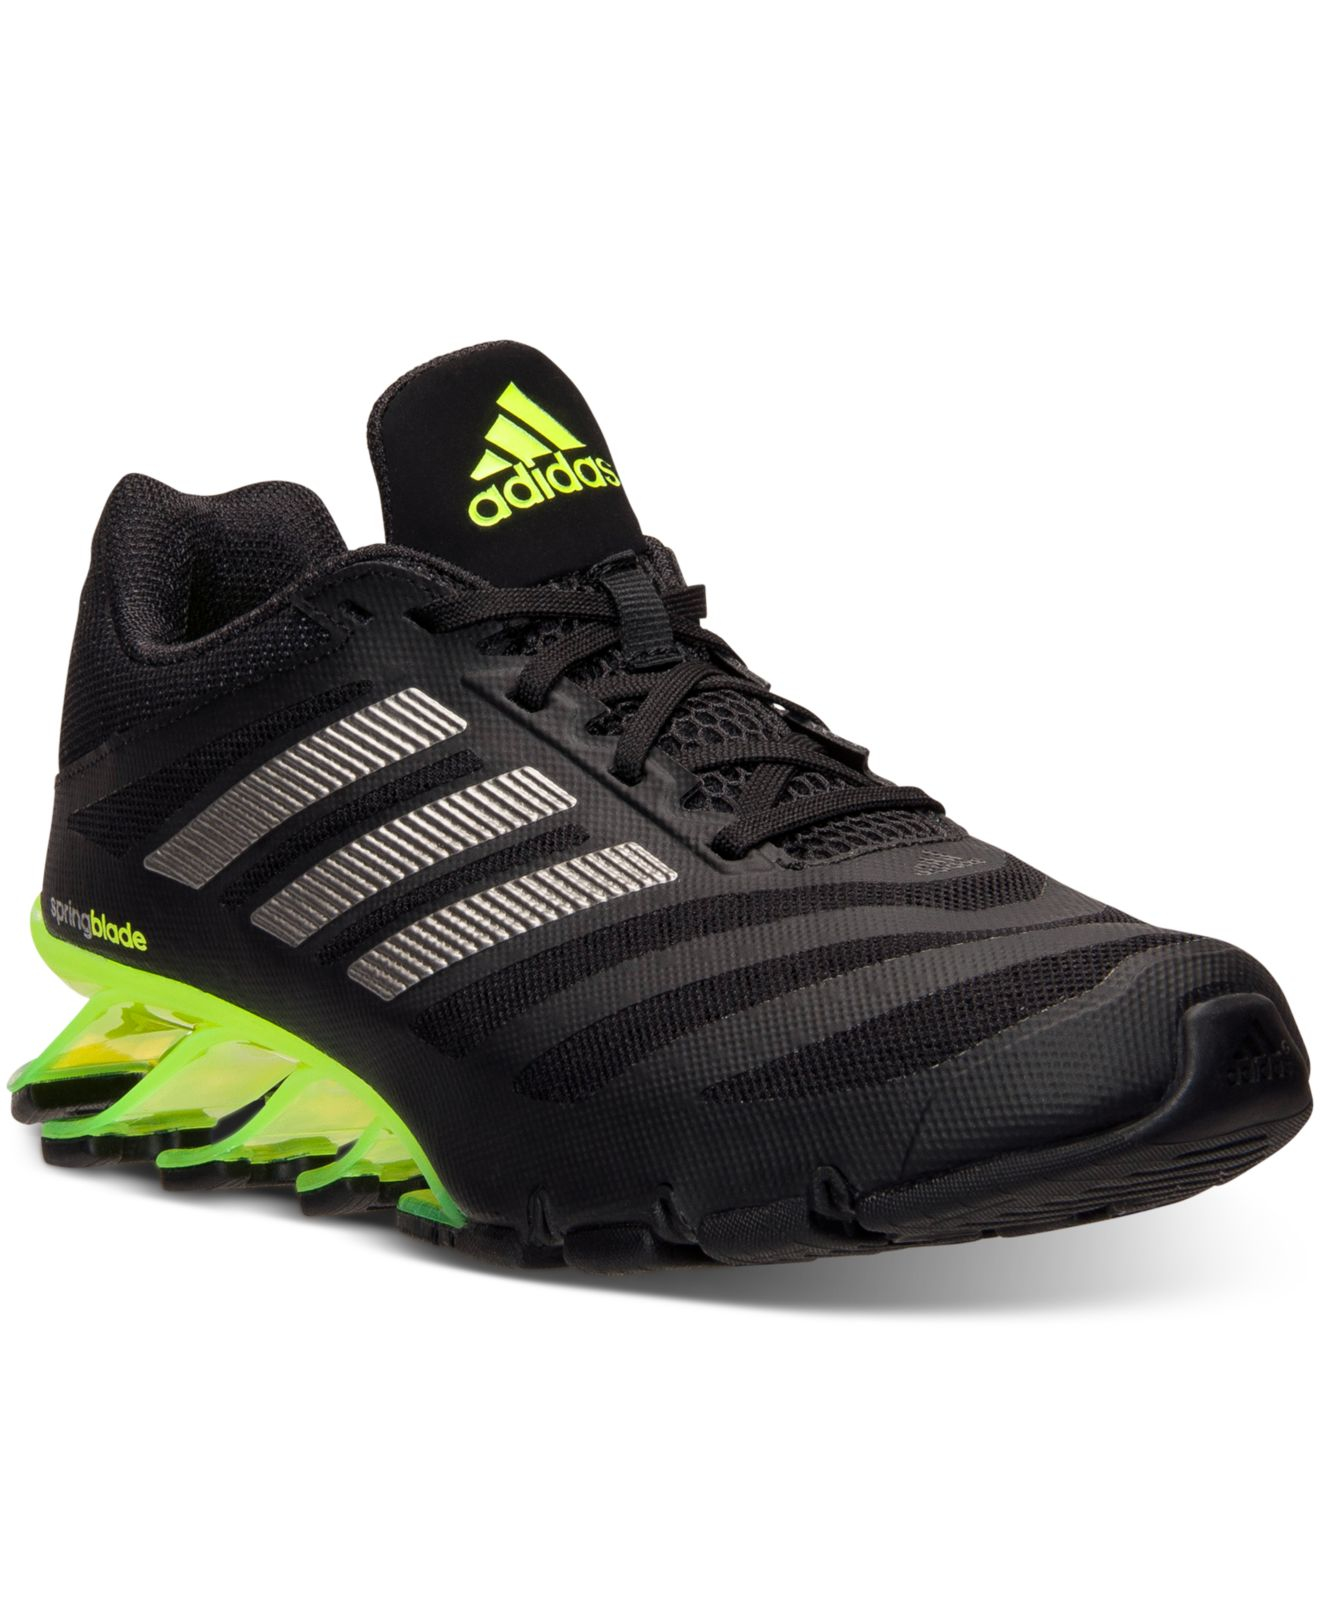 check out 89efb c543b ... closeout lyst adidas mens springblade ignite running sneakers from  finish line in 0564c 5802b